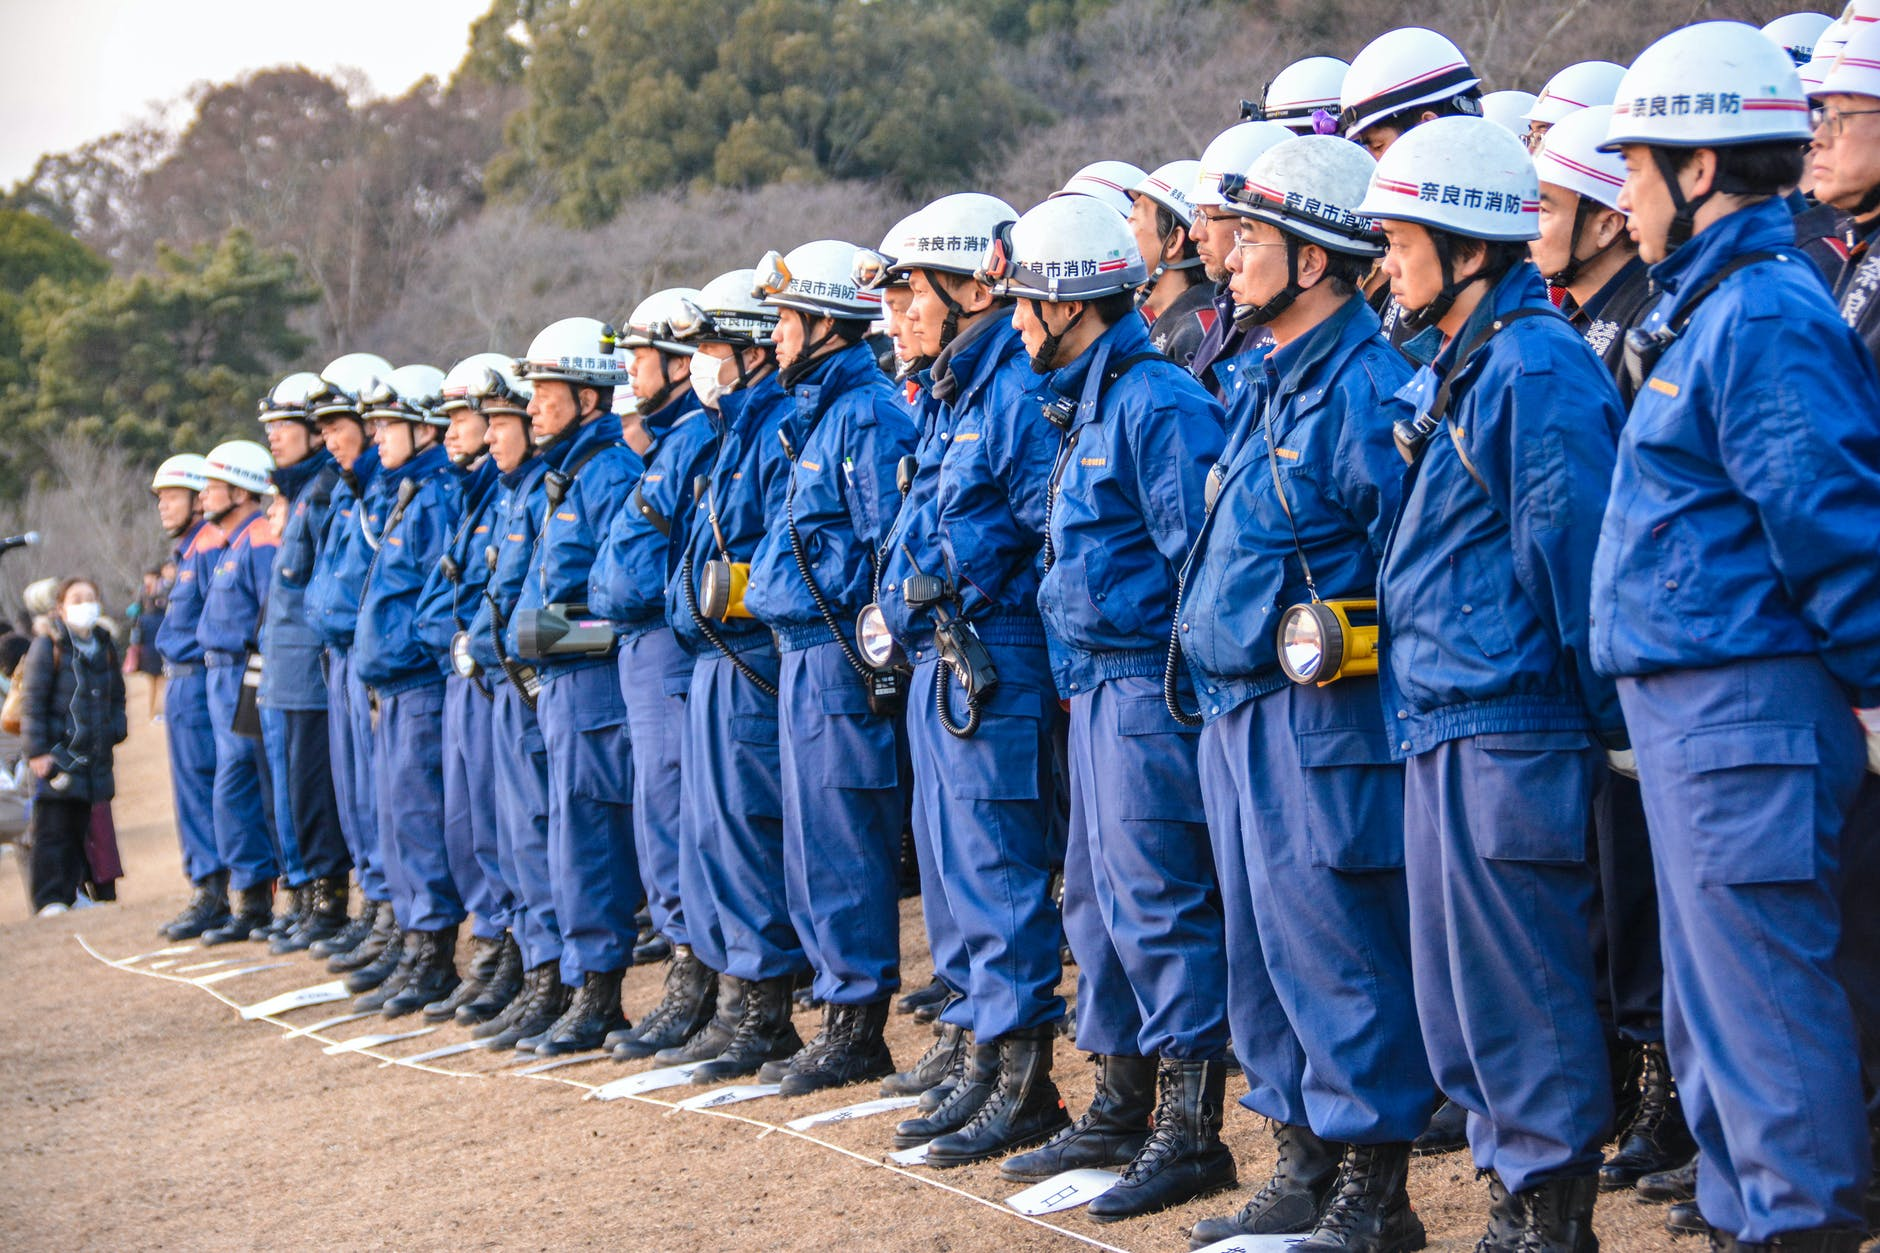 people in blue uniform standing on gray dirt road